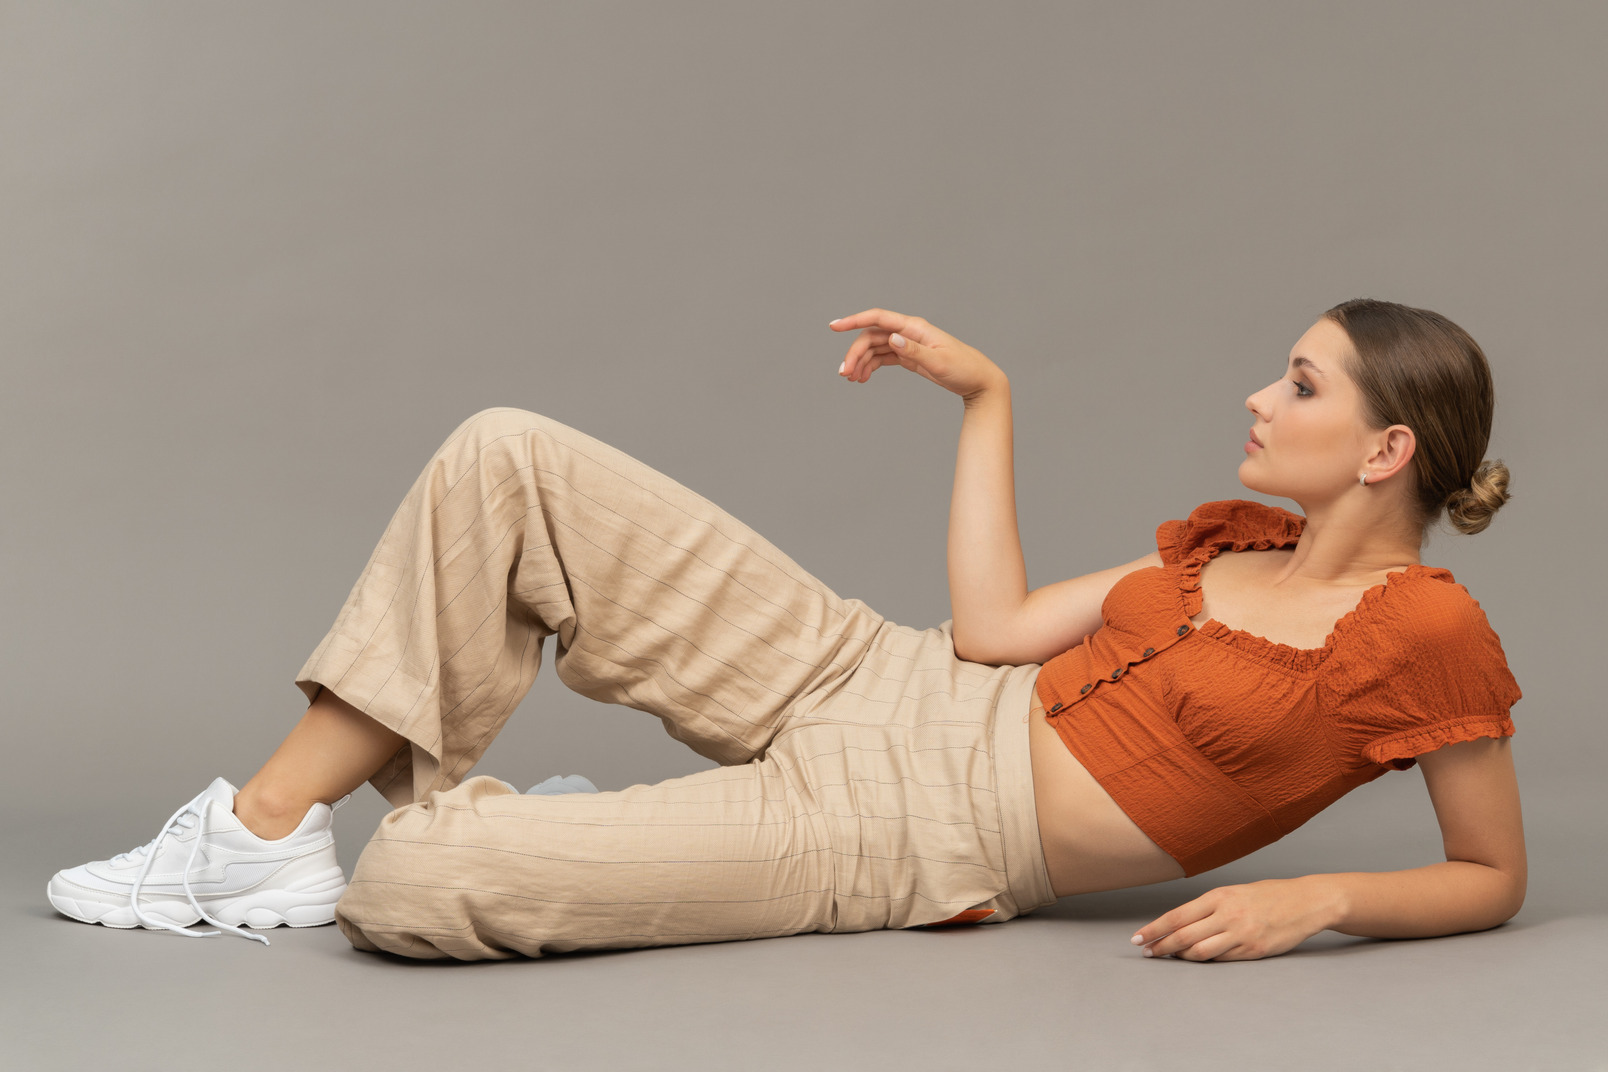 Young woman waiting on the floor